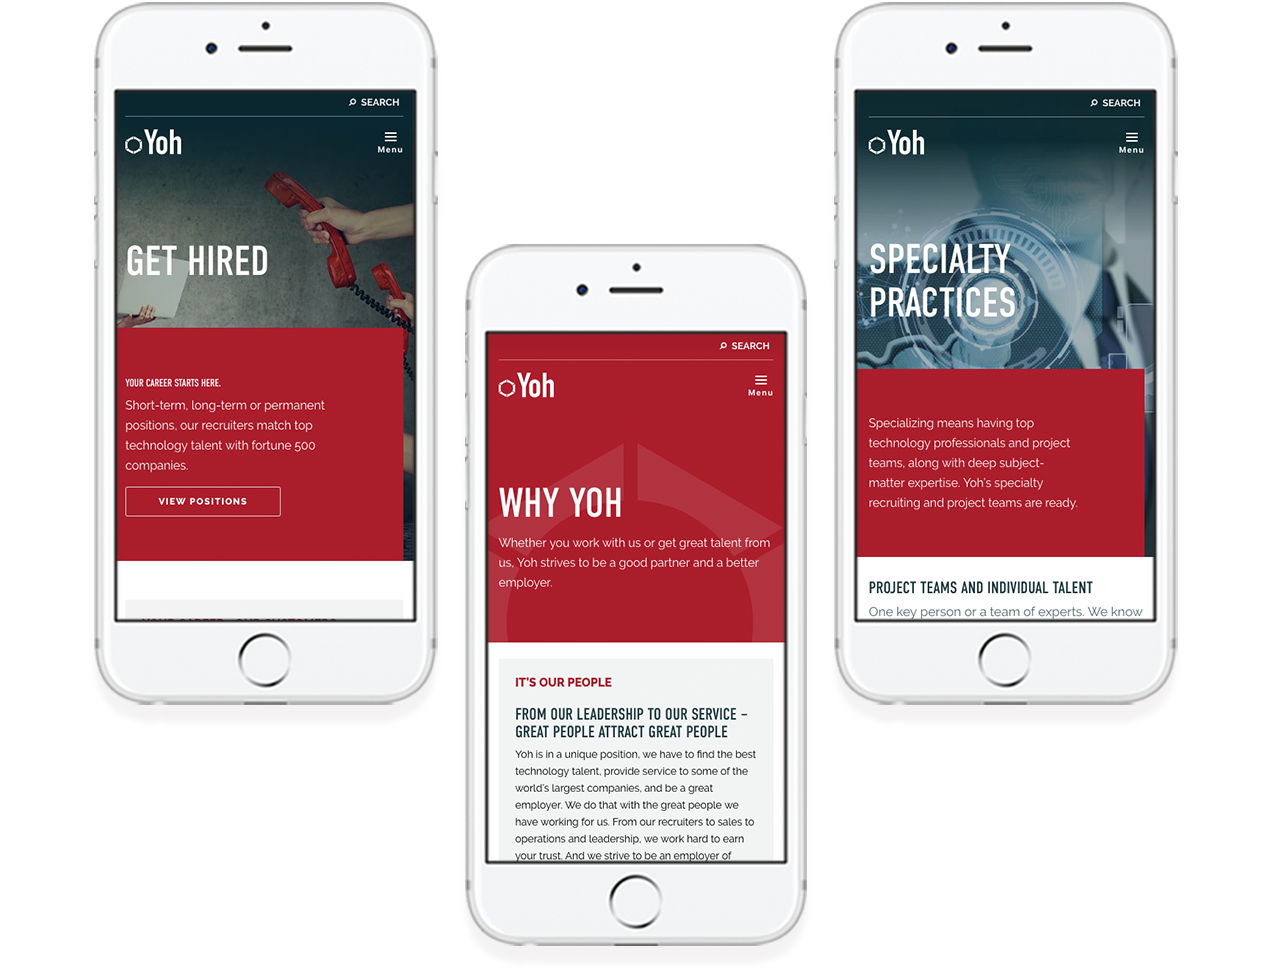 Yoh mobile responsive website design examples on three phones